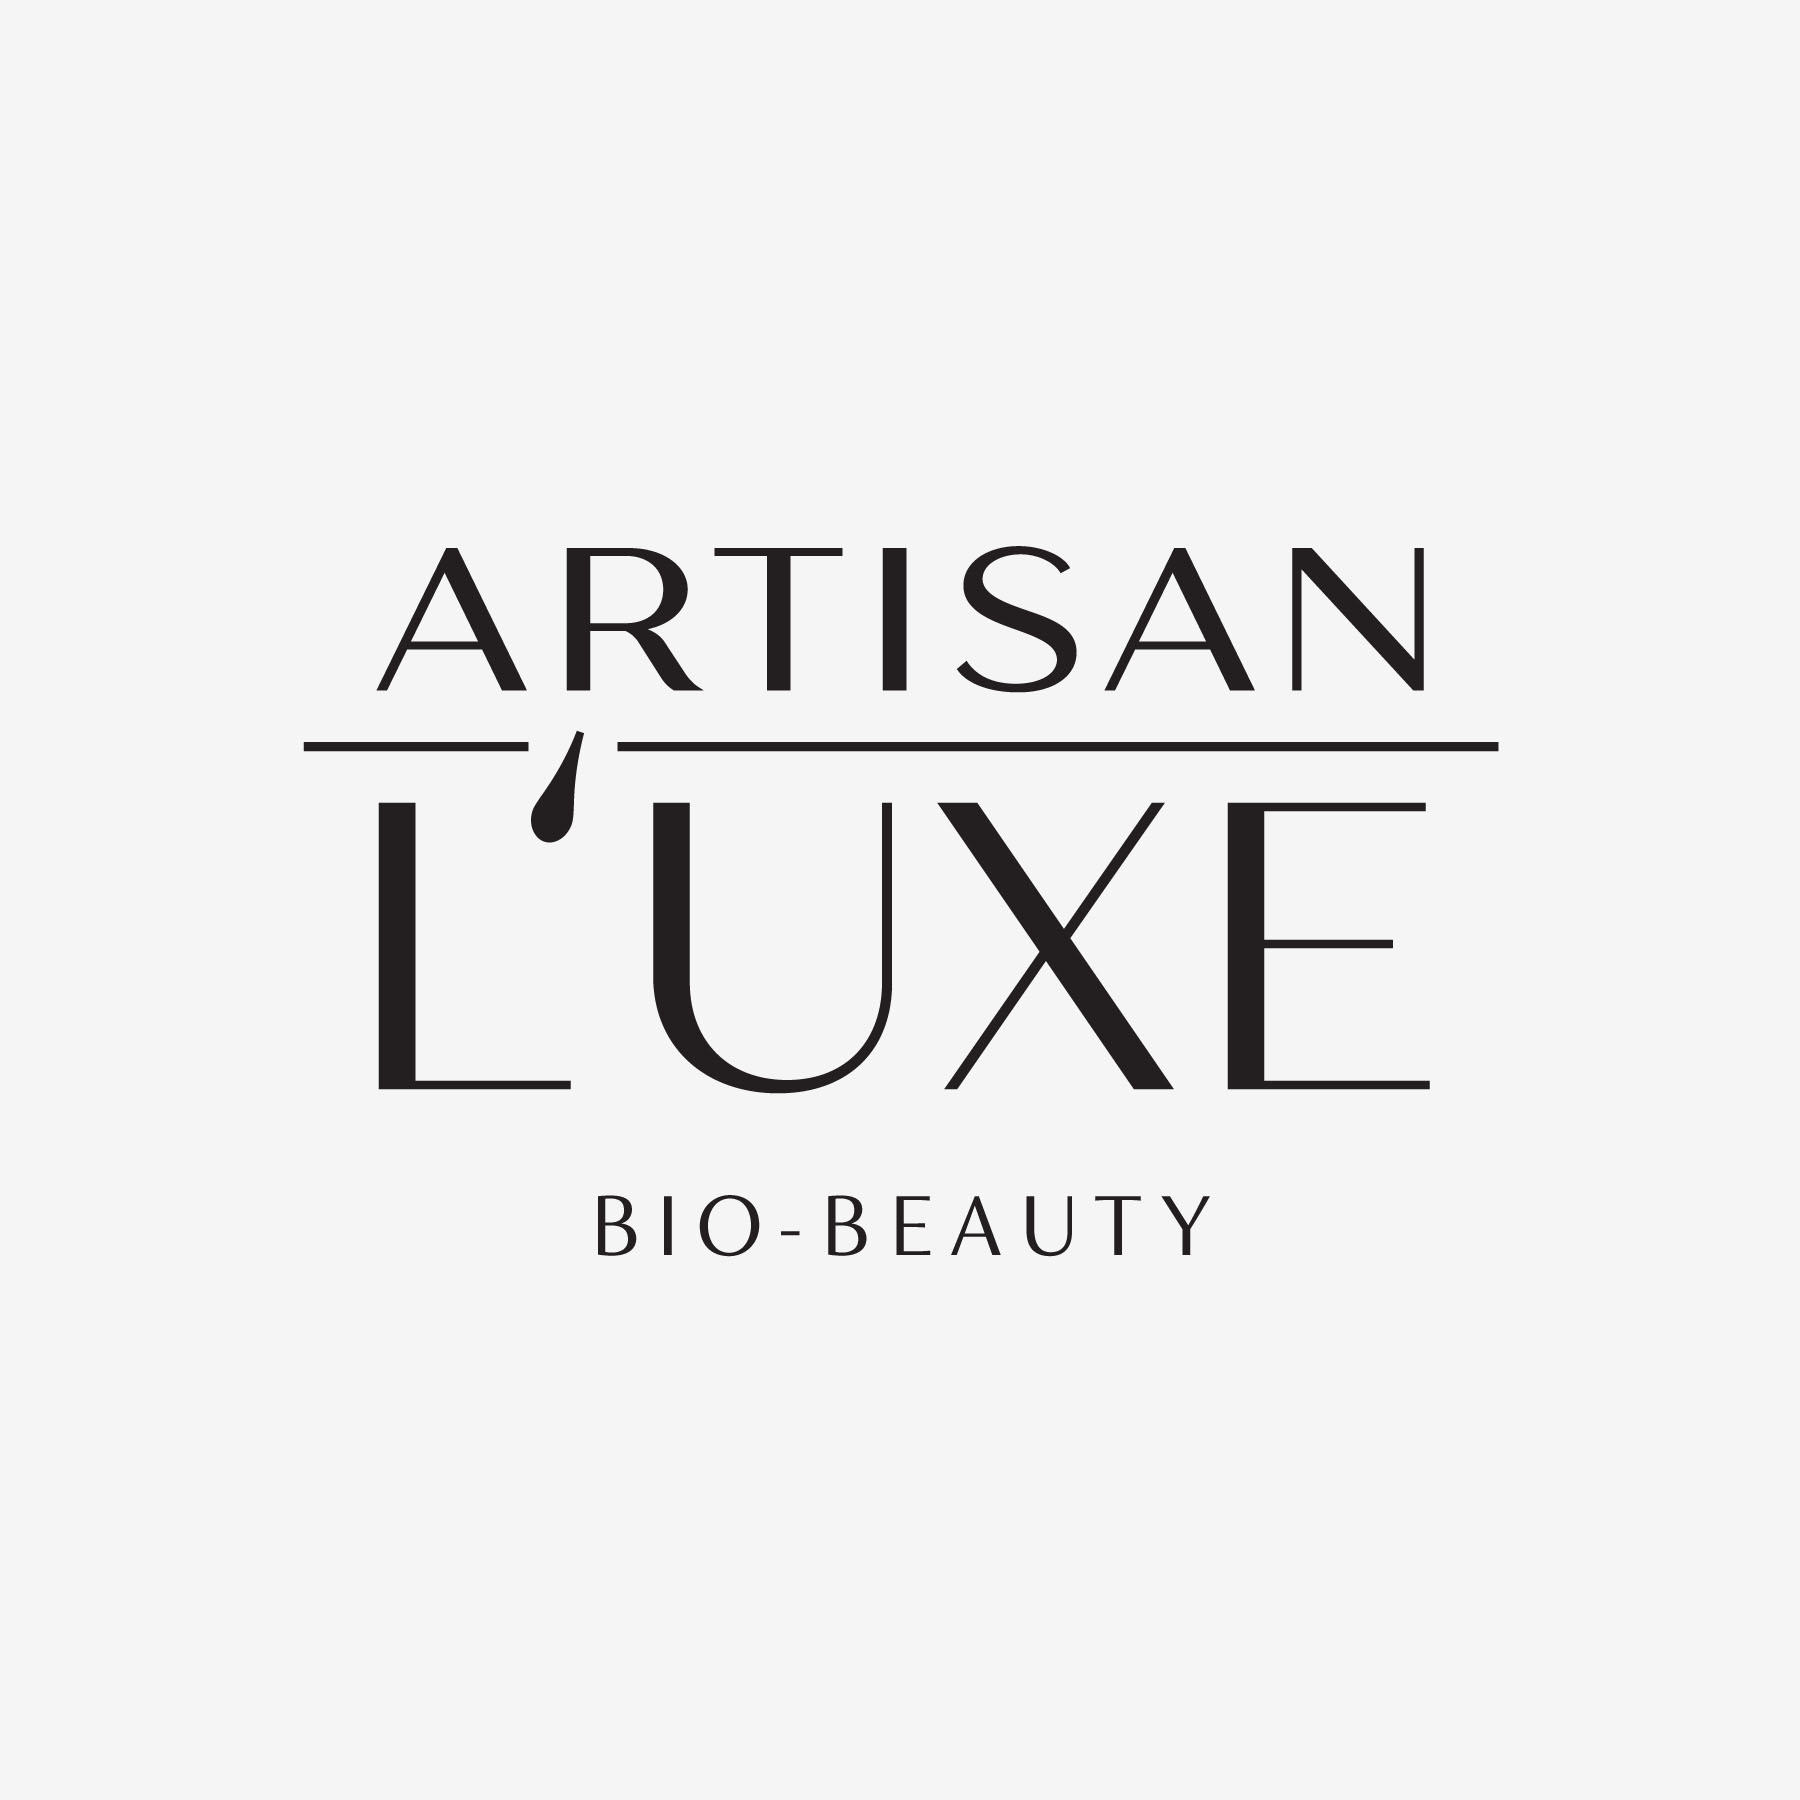 Artisan L'uxe - Bio-based Skincare line created by internationally renowned, top celebrity makeup artist, Sue Devitt. Work includes logo, packaging, website design and graphic standards for her social media.